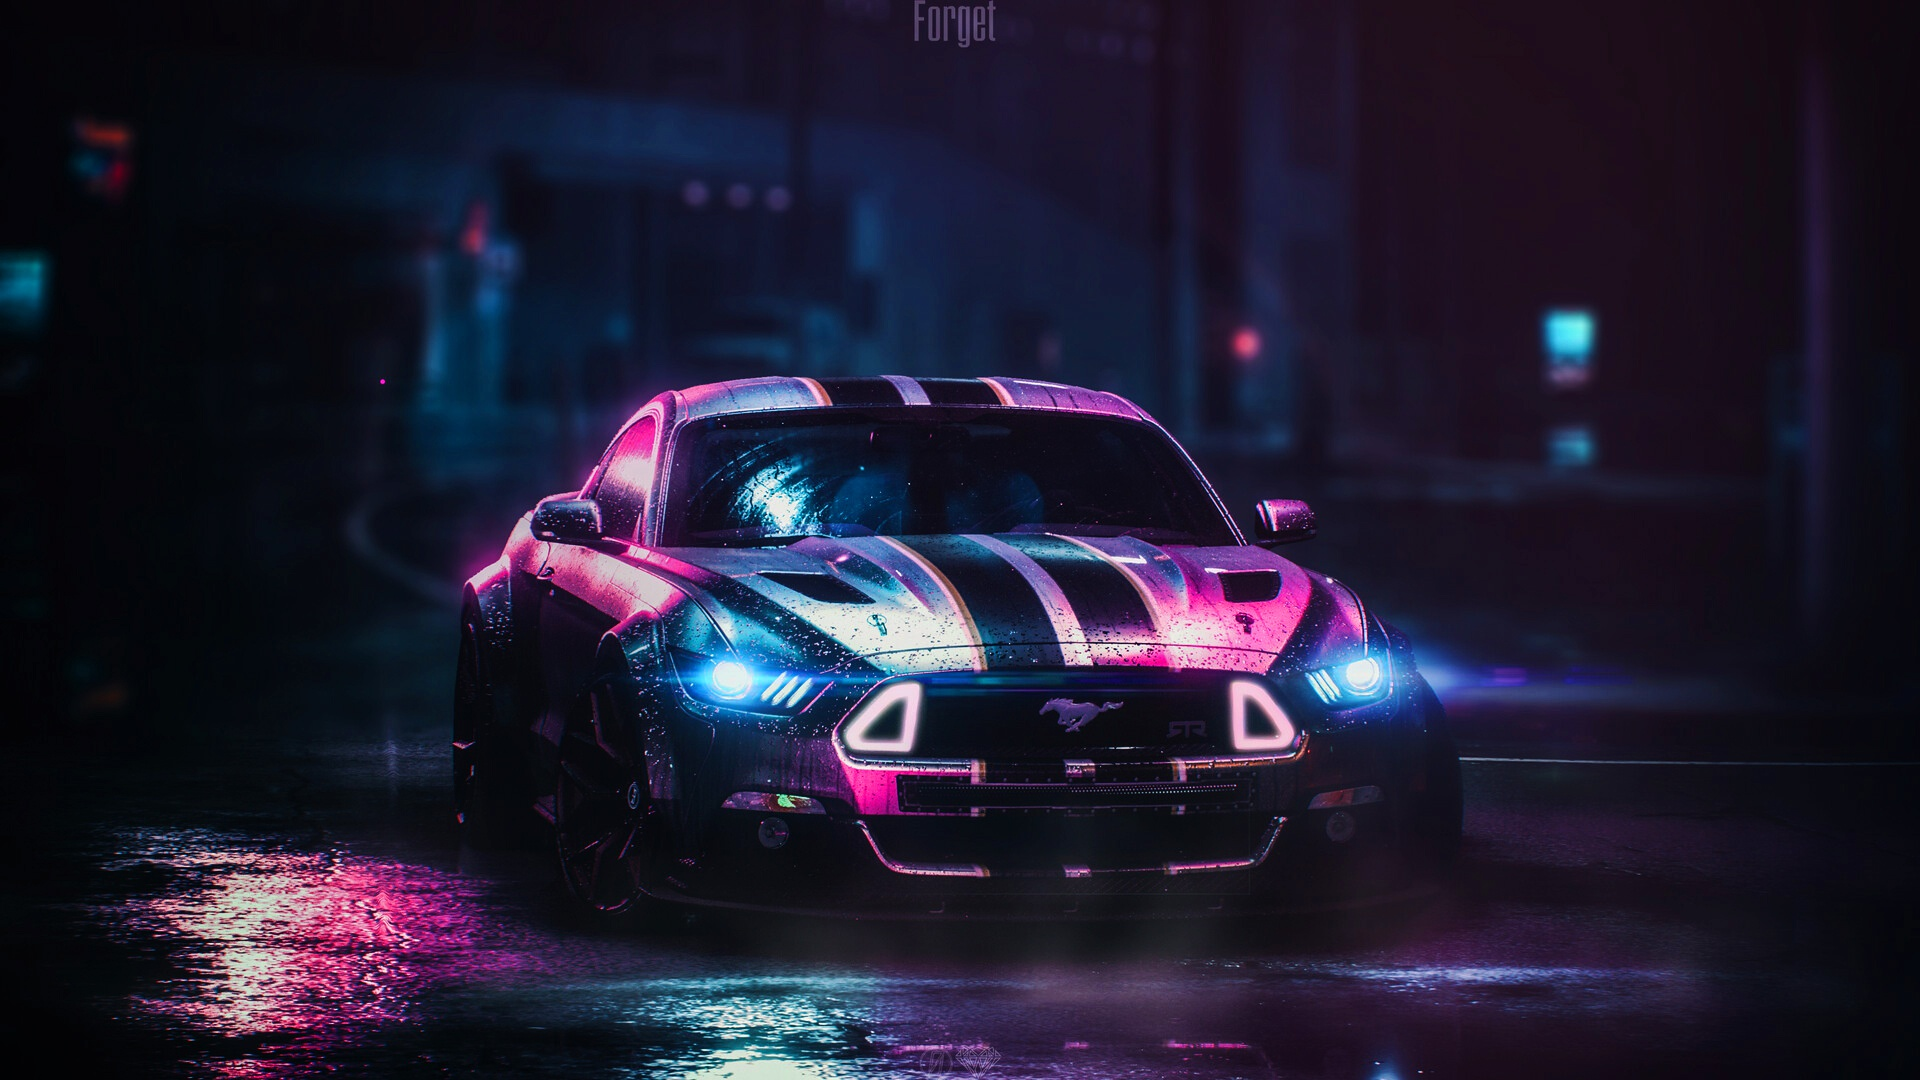 Ford Mustang Hd Hd Cars 4k Wallpapers Images Backgrounds